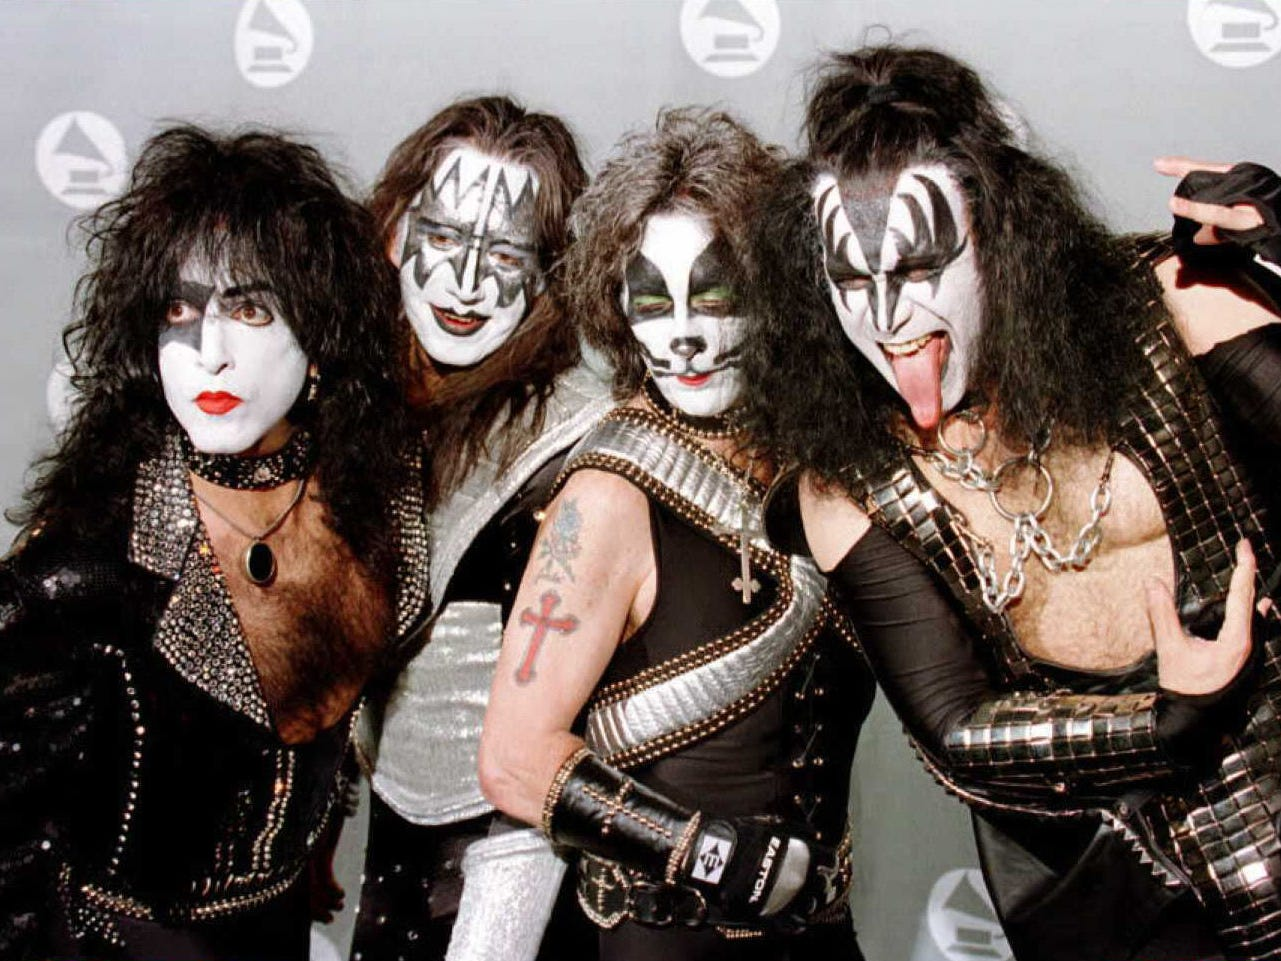 """LOS ANGELES, UNITED STATES:  Members of the veteran rock group """"KISS"""" pose for photographers in the photo room at the 38th Annual Grammy Awards in Los Angeles 28 February. The group were presenters at the awards ceremony."""